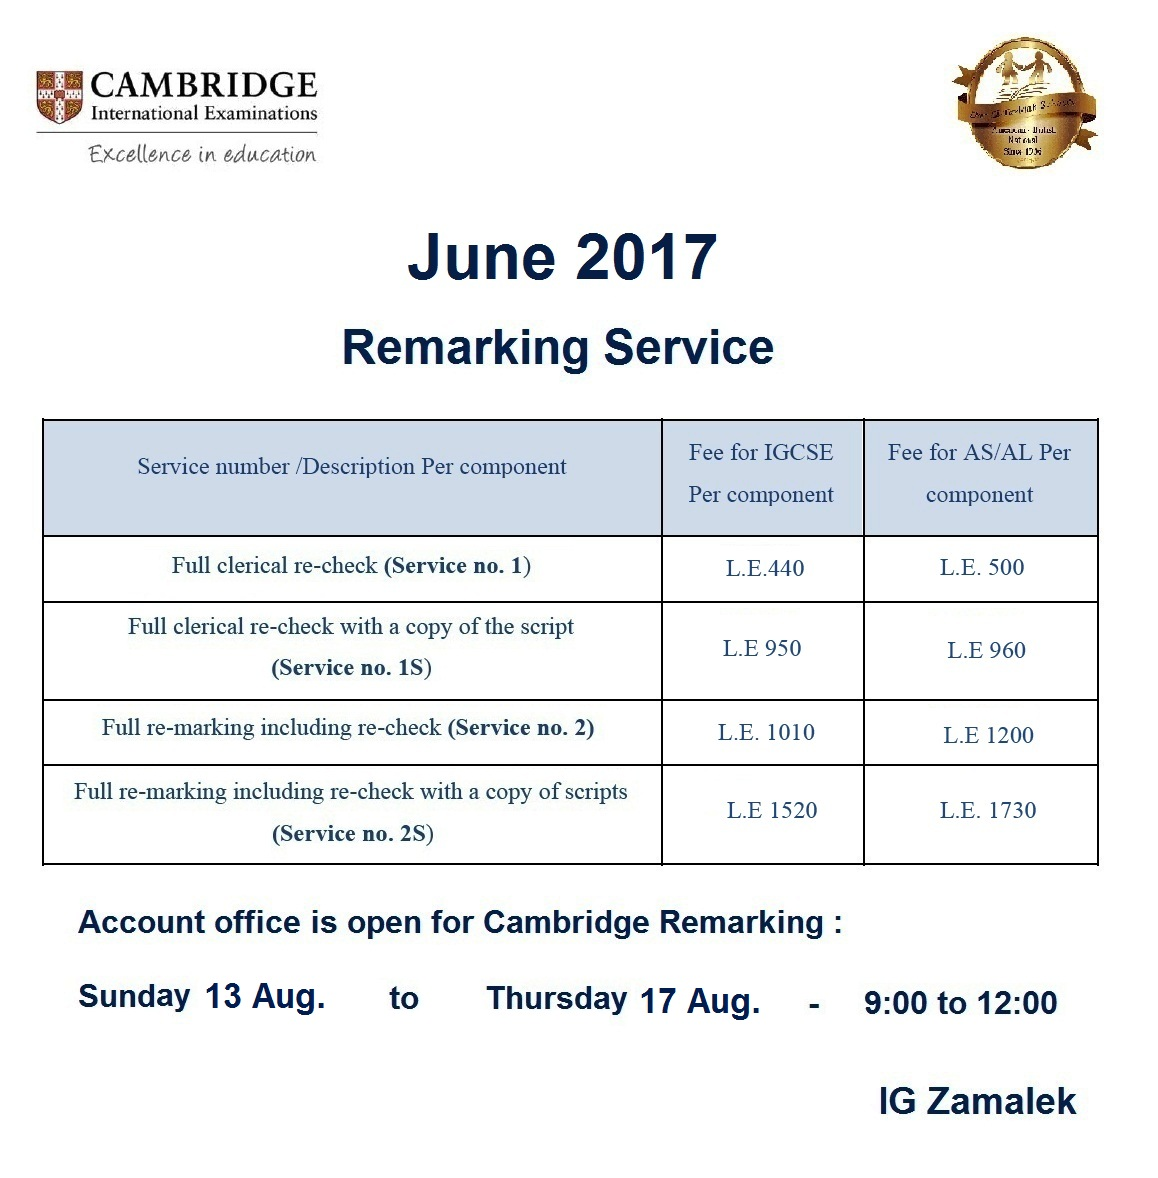 IG Zamalek : Remarking Fees CIE - June 2017